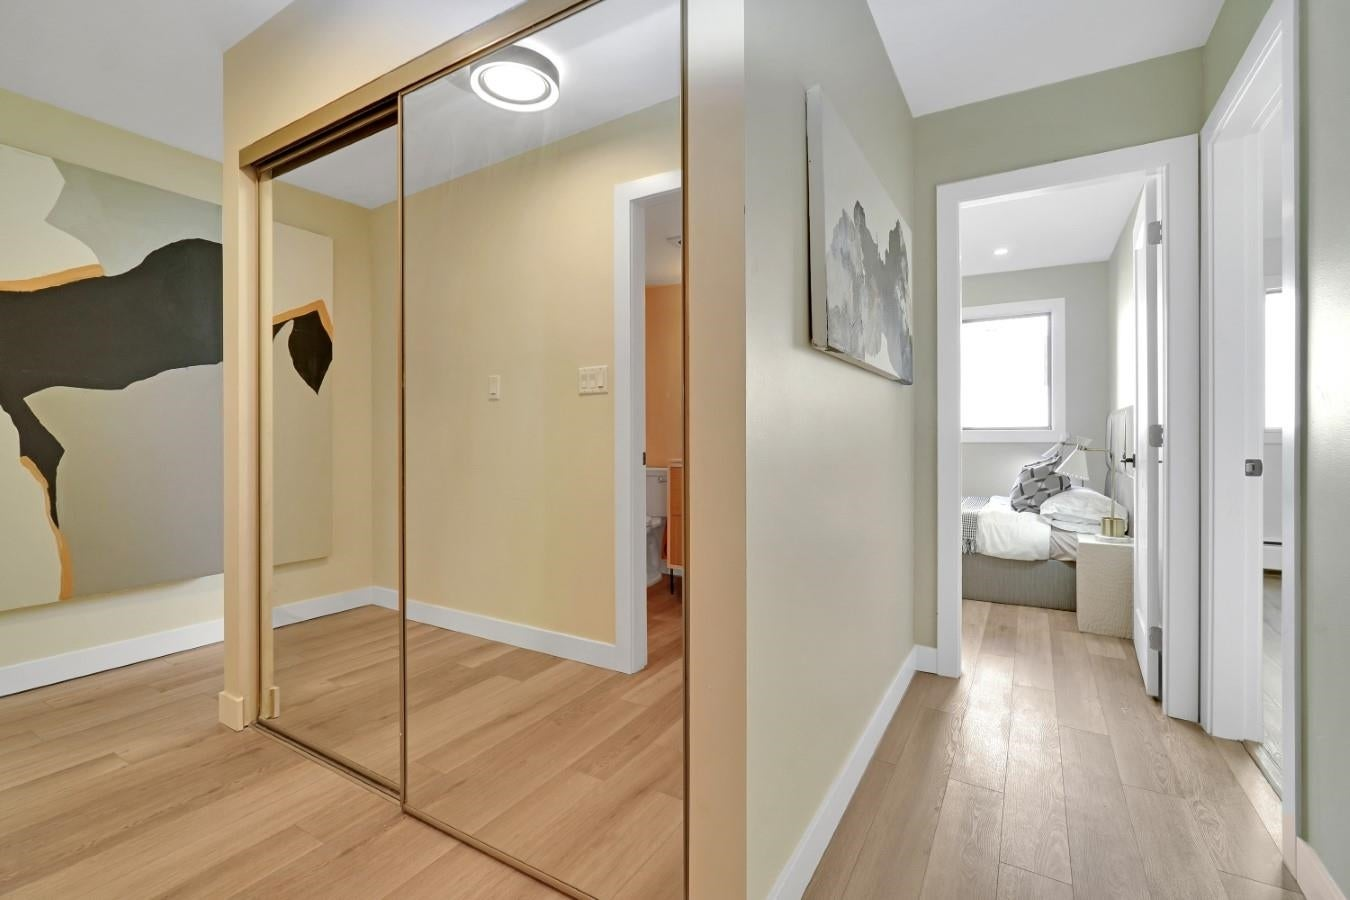 206 330 W 2ND STREET - Lower Lonsdale Apartment/Condo for sale, 2 Bedrooms (R2604160) - #26